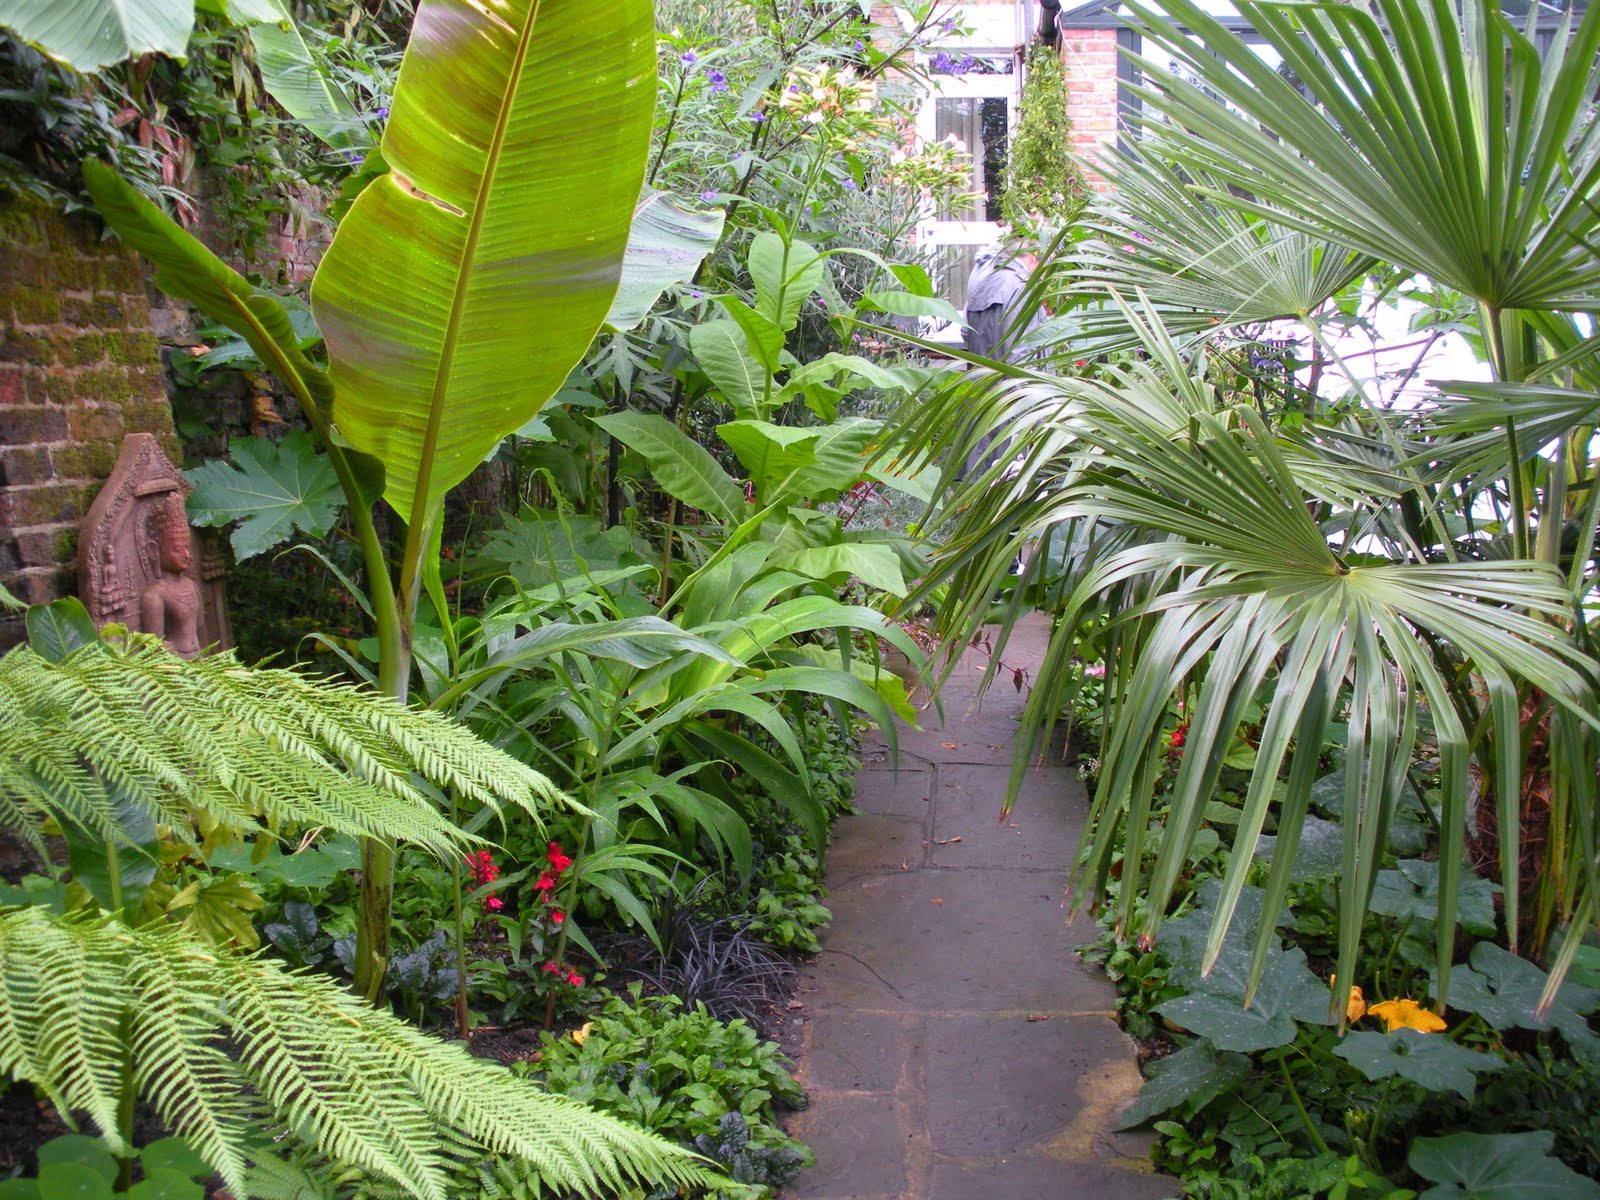 Victoria's backyard: Going totally tropical in south London on Tropical Small Backyard Ideas id=23067